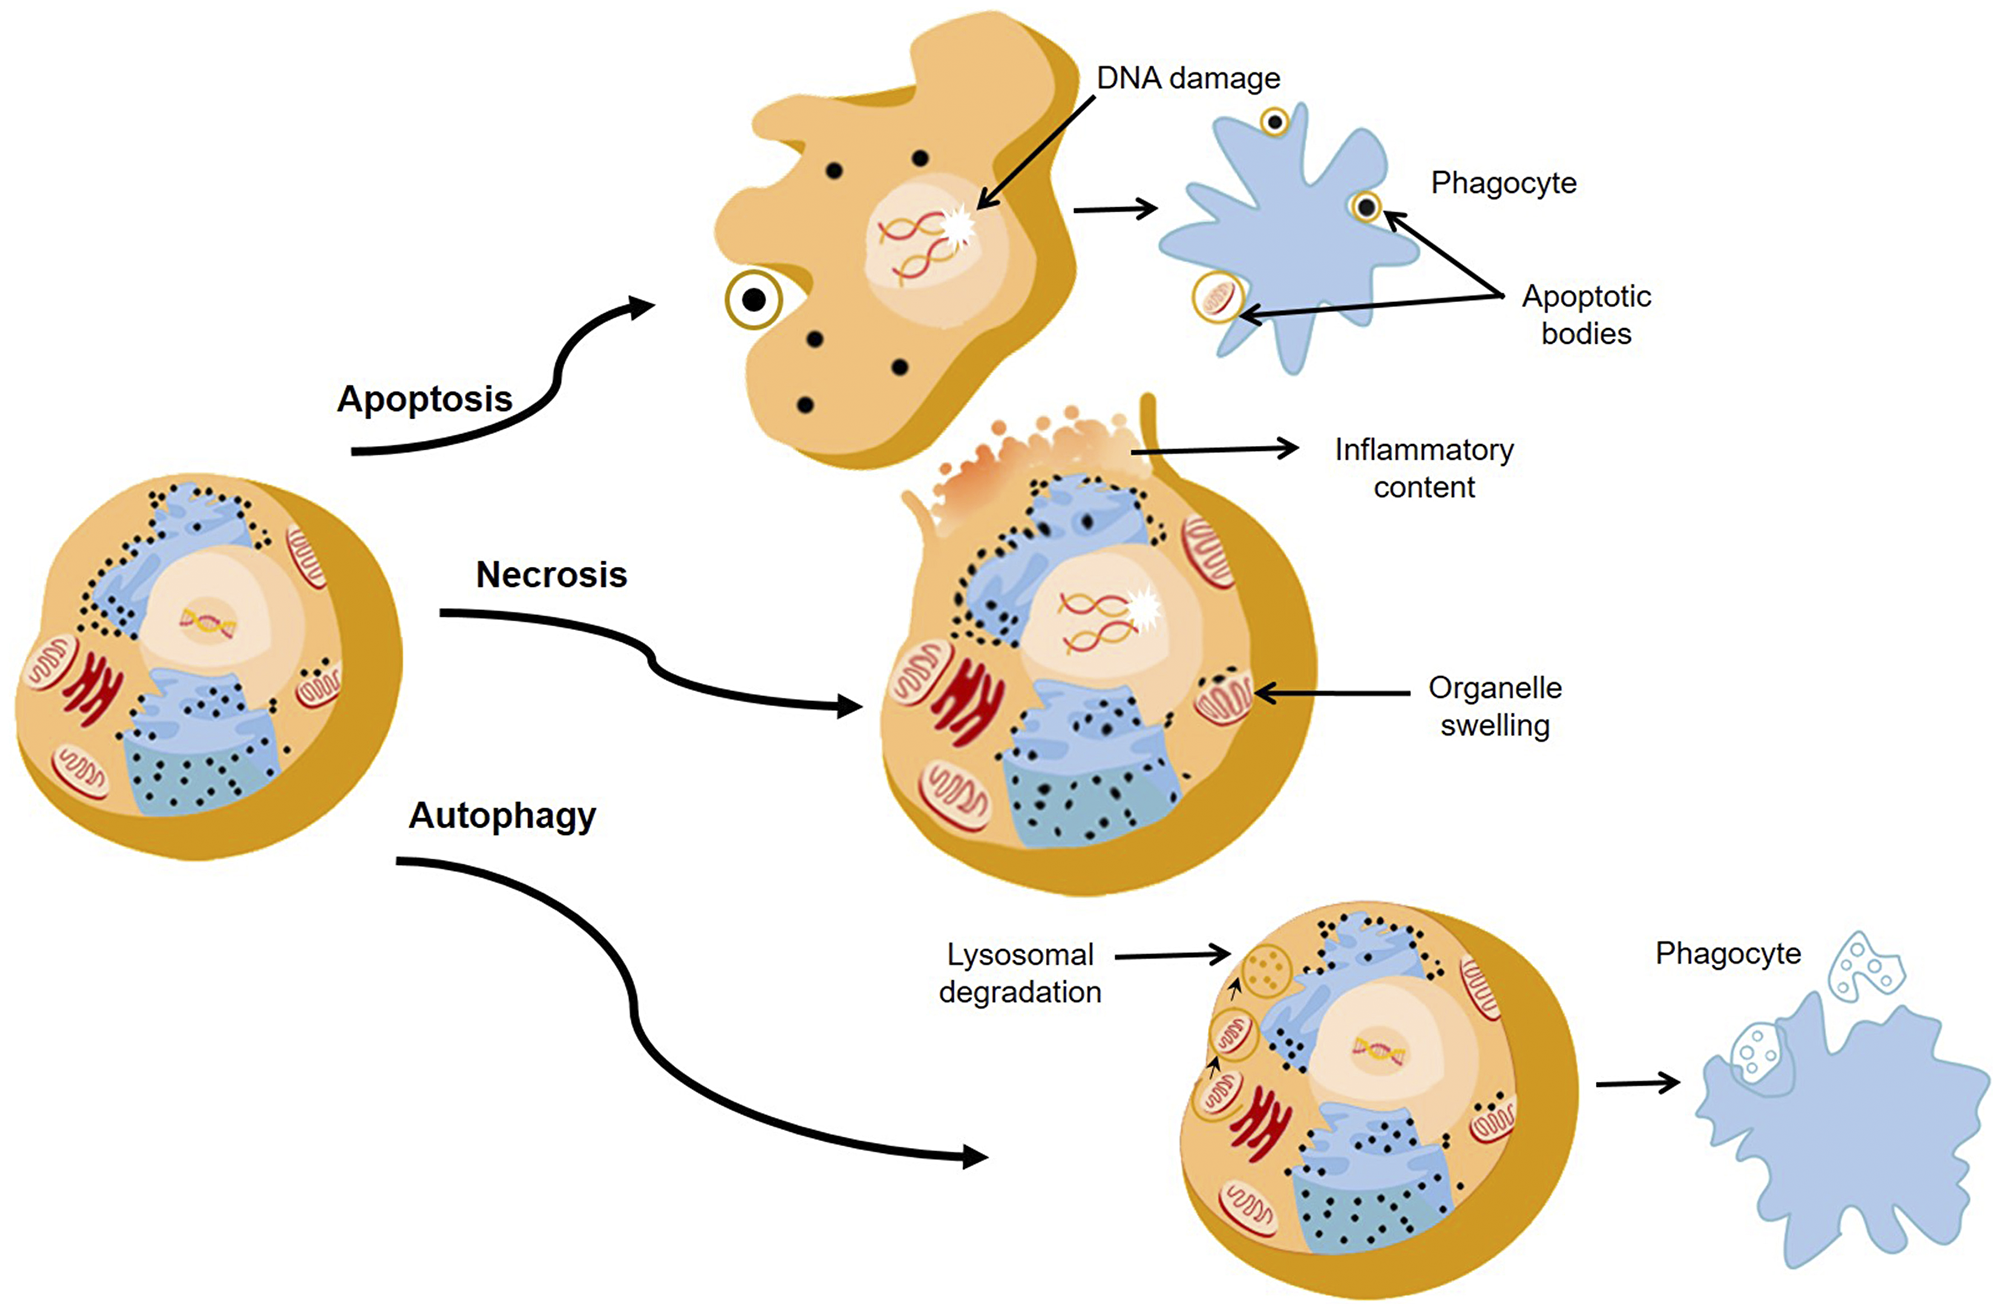 The major pathways of death cells through apoptosis, necrosis, and autophagy.